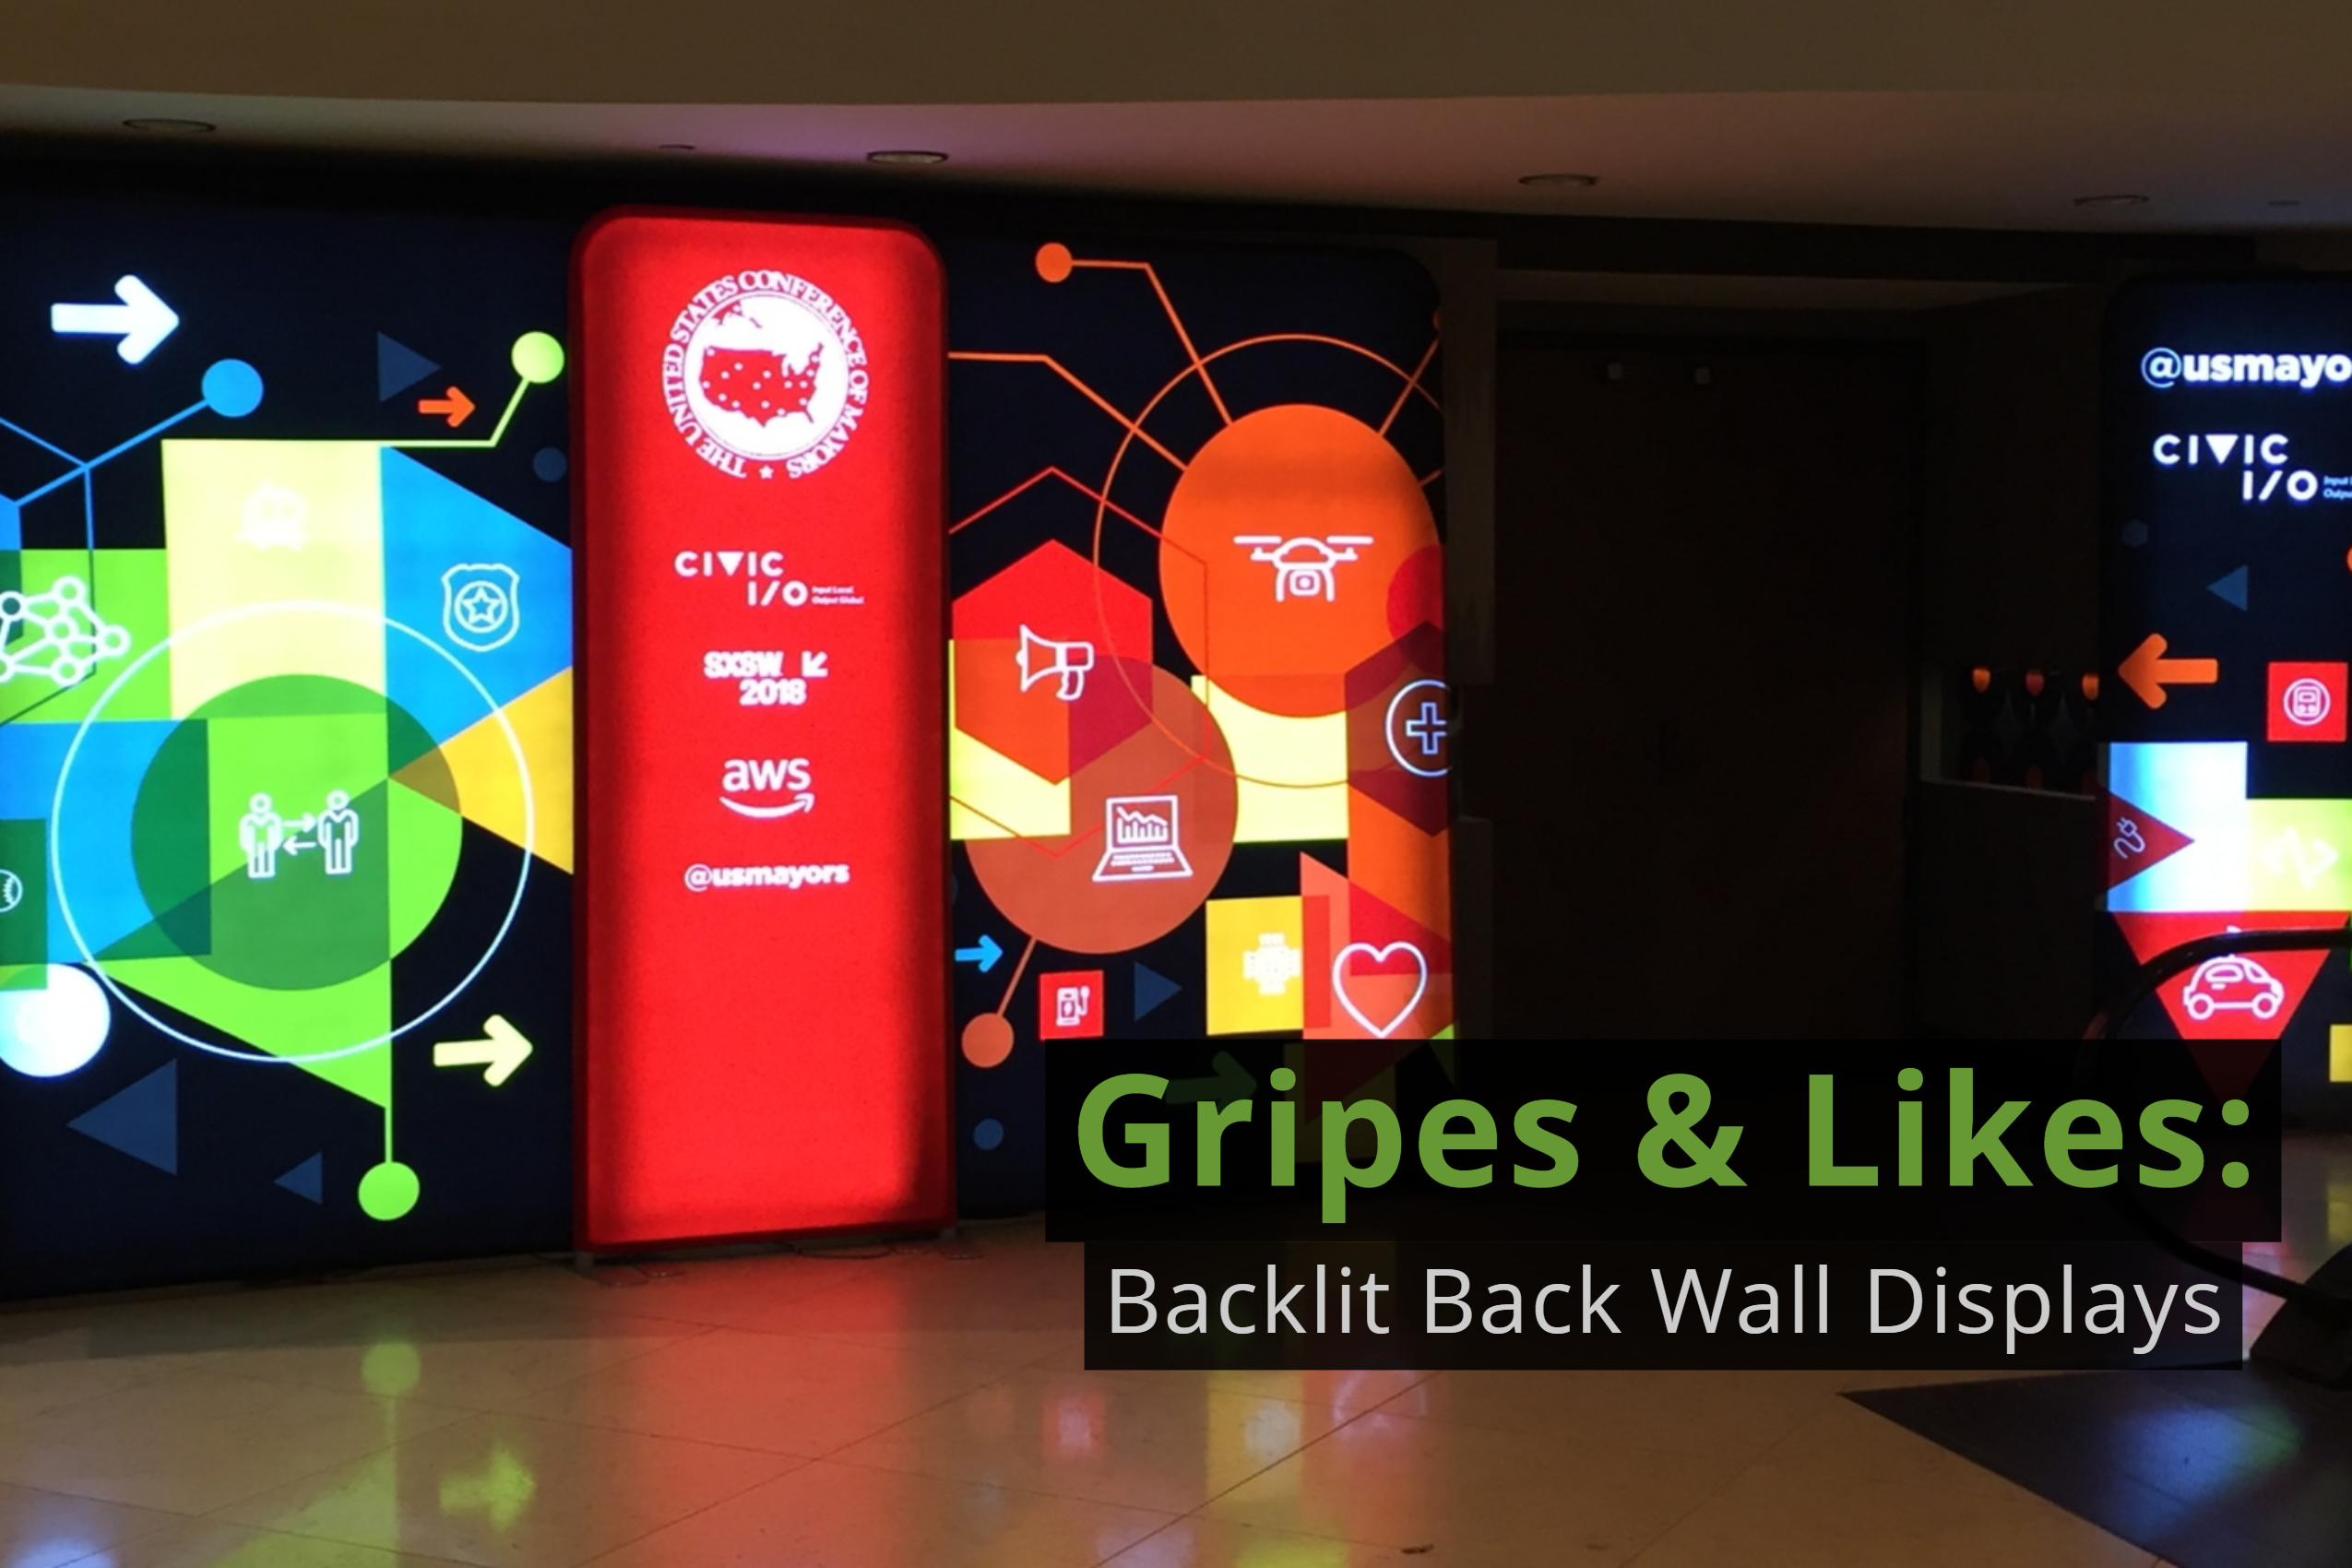 Gripes & Likes: Backlit Back Wall Displays